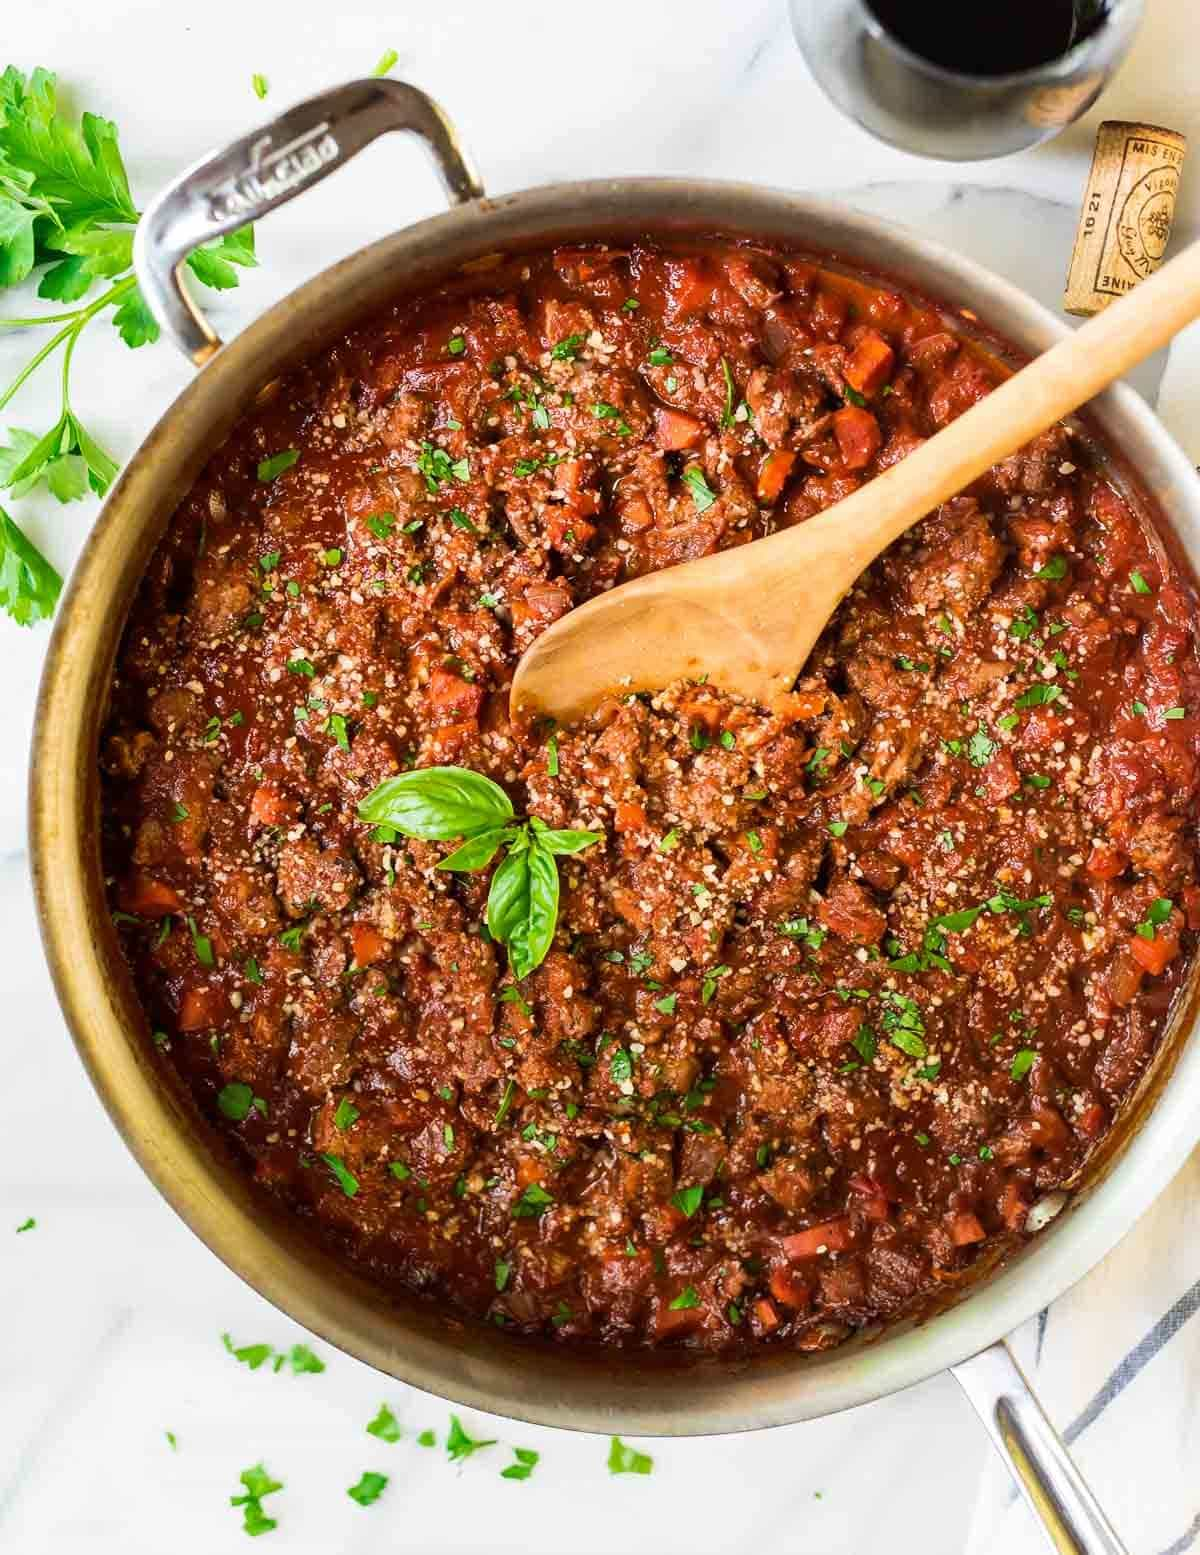 saute pan filled with turkey bolognese sauce